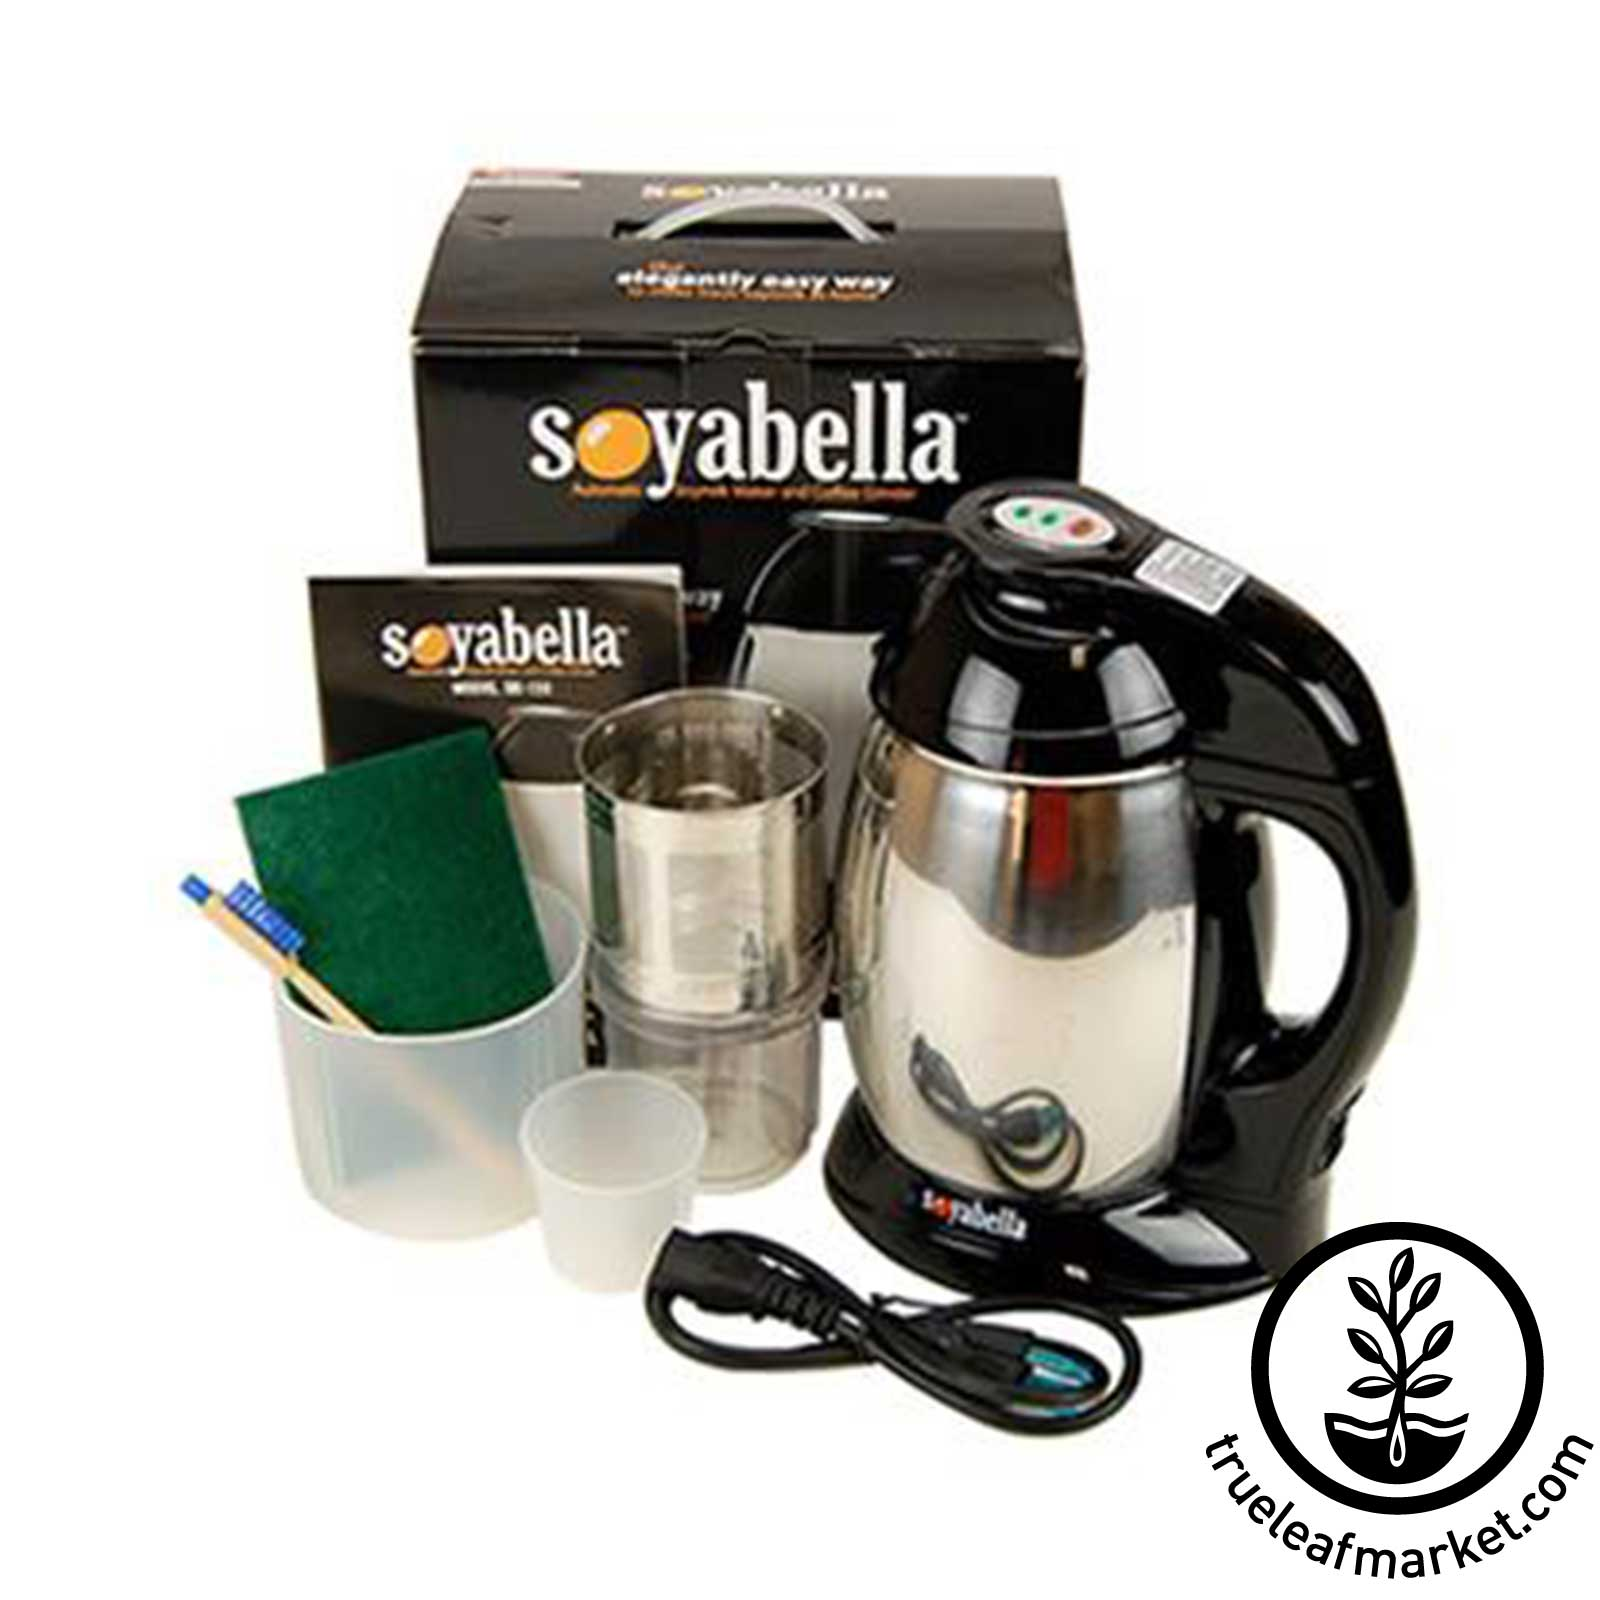 Soyabella Soymilk Maker